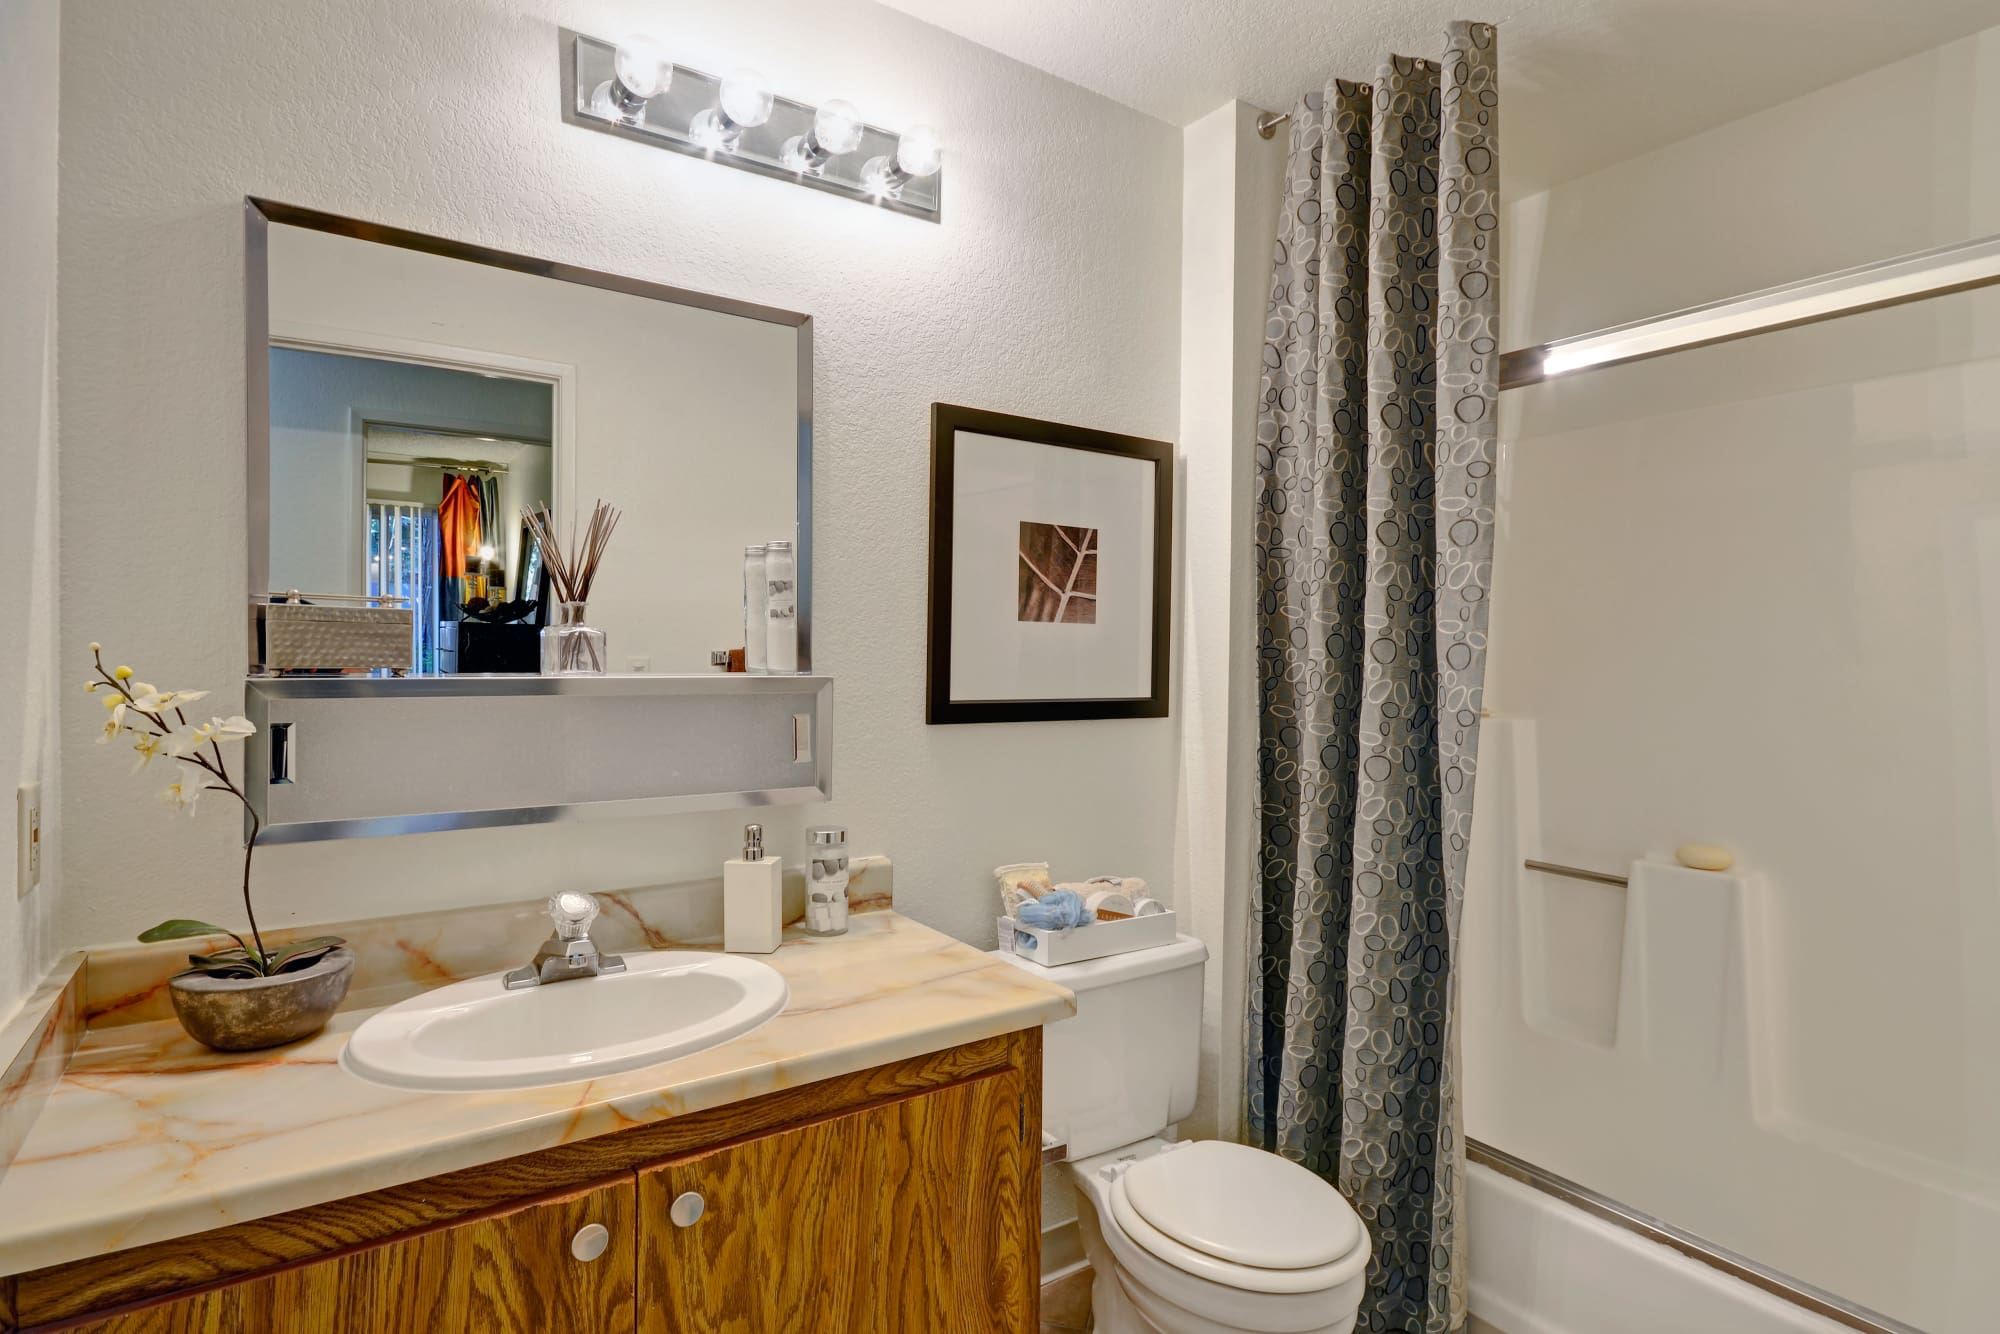 Avery Park Apartments offers nice bathrooms with large mirrors